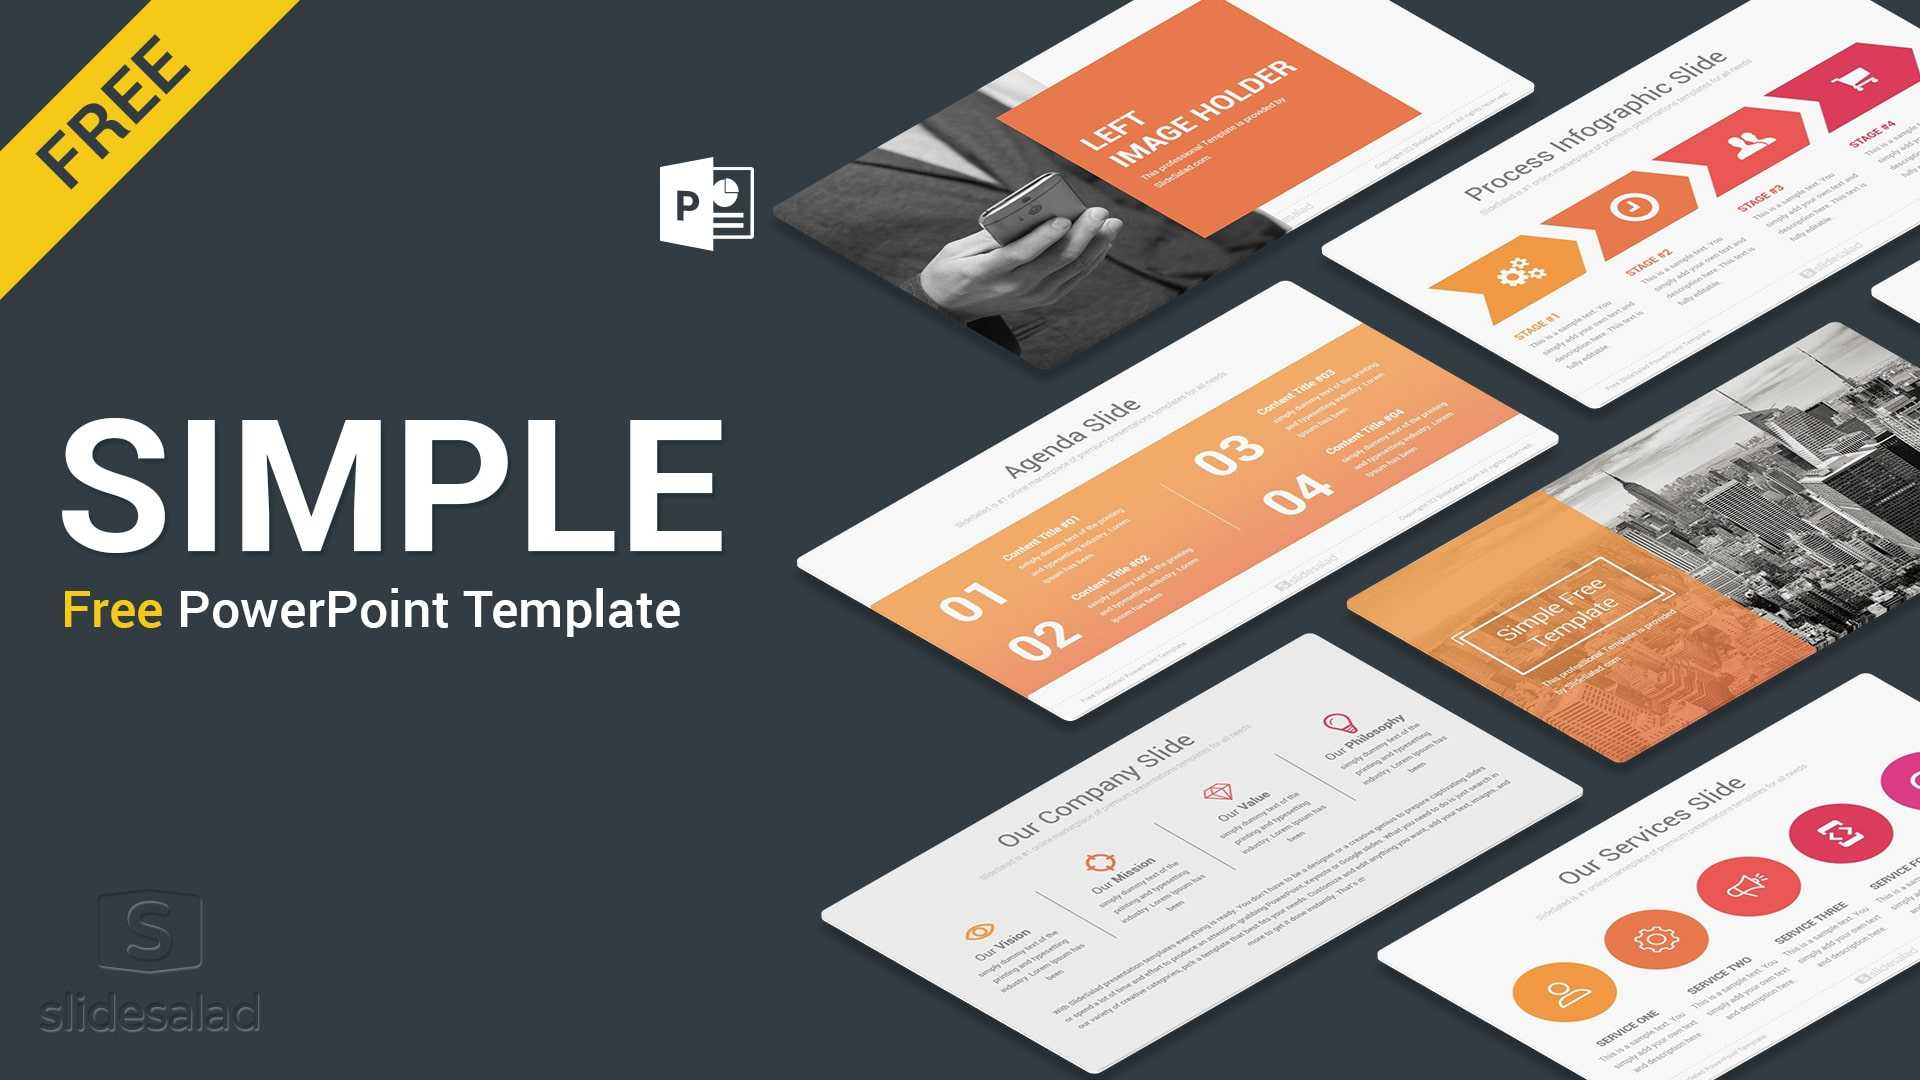 Best Free Presentation Templates Professional Designs 2019 with Free Powerpoint Presentation Templates Downloads